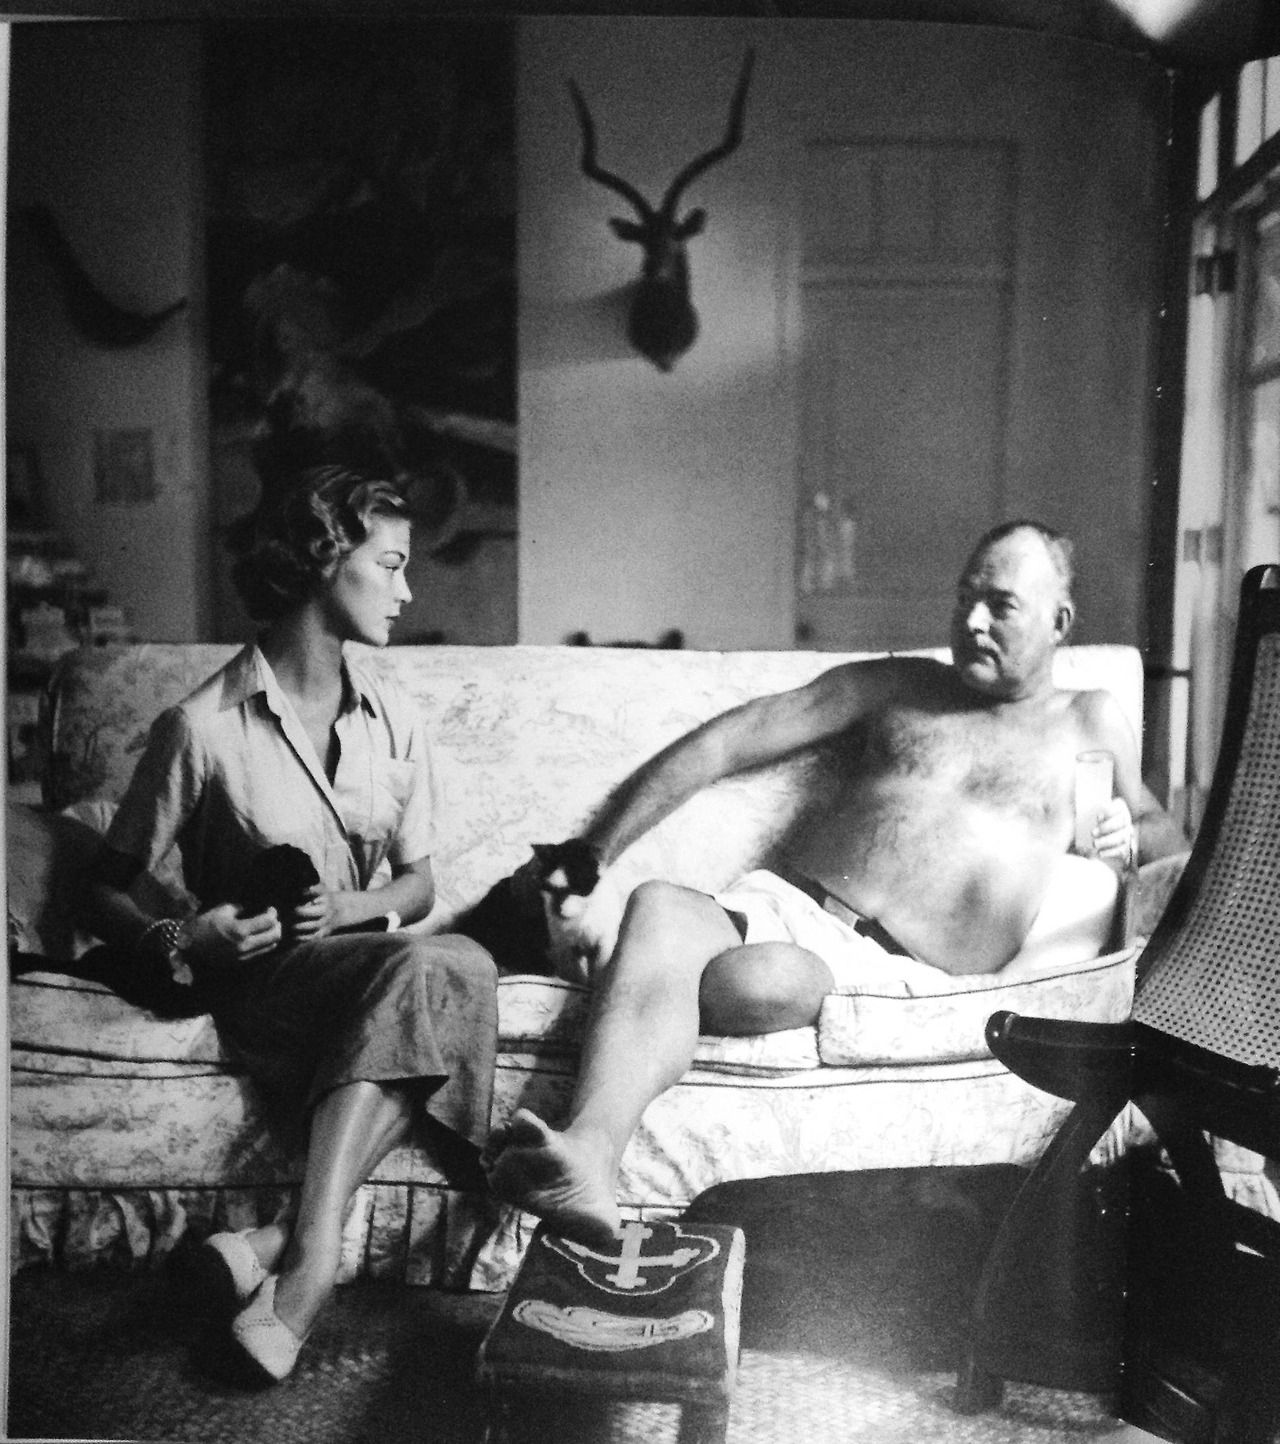 Ernest Hemingway and model Jean Patchett, sitting on a sofa in Hemingway's farmhouse in Cuba. Photo taken by Clifford Coffin